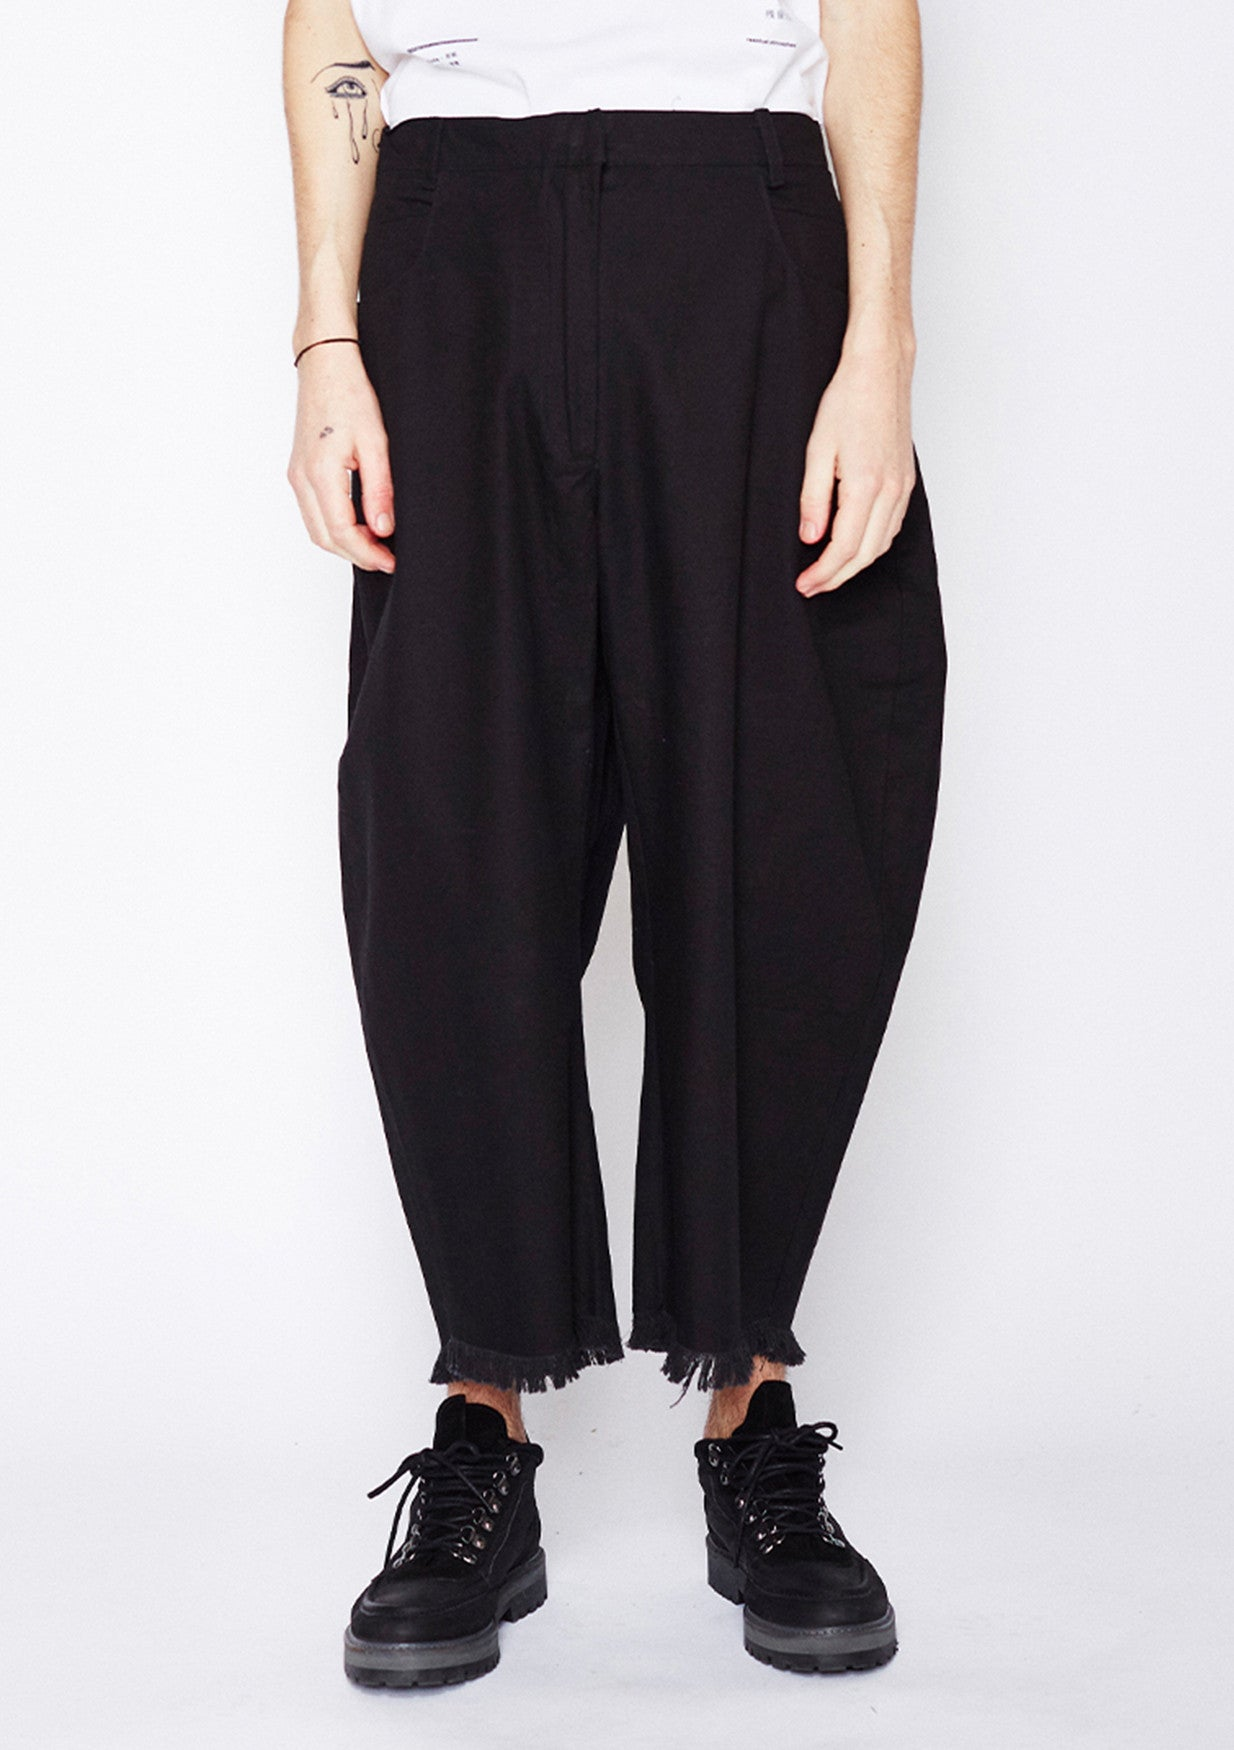 Plan B Pant - Blk only size L left